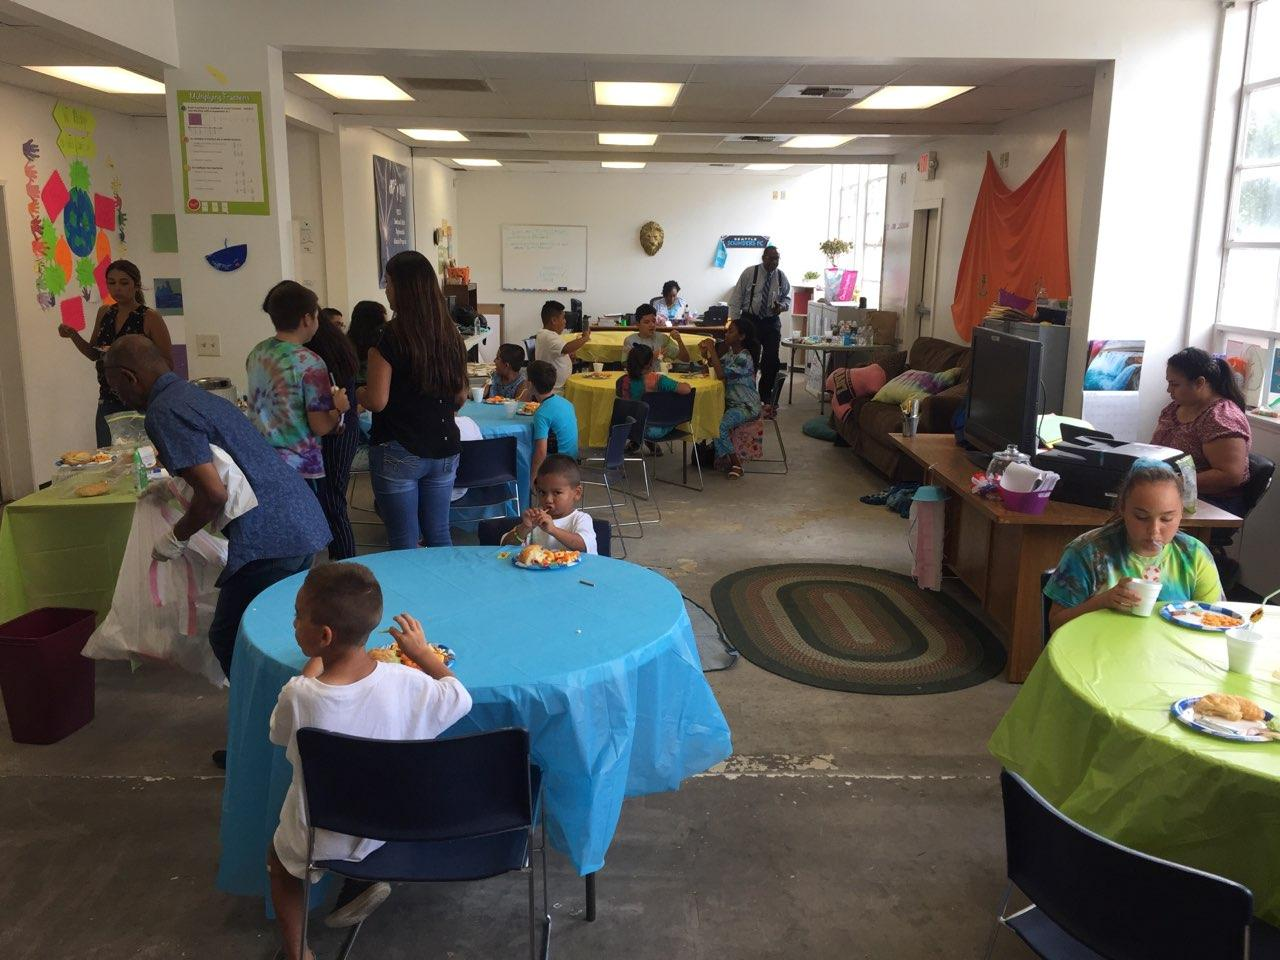 Children take part in the Summer Enrichment and Reading program organized by Harvest Park Educational Center in Merced. Photo: Steve Newvine